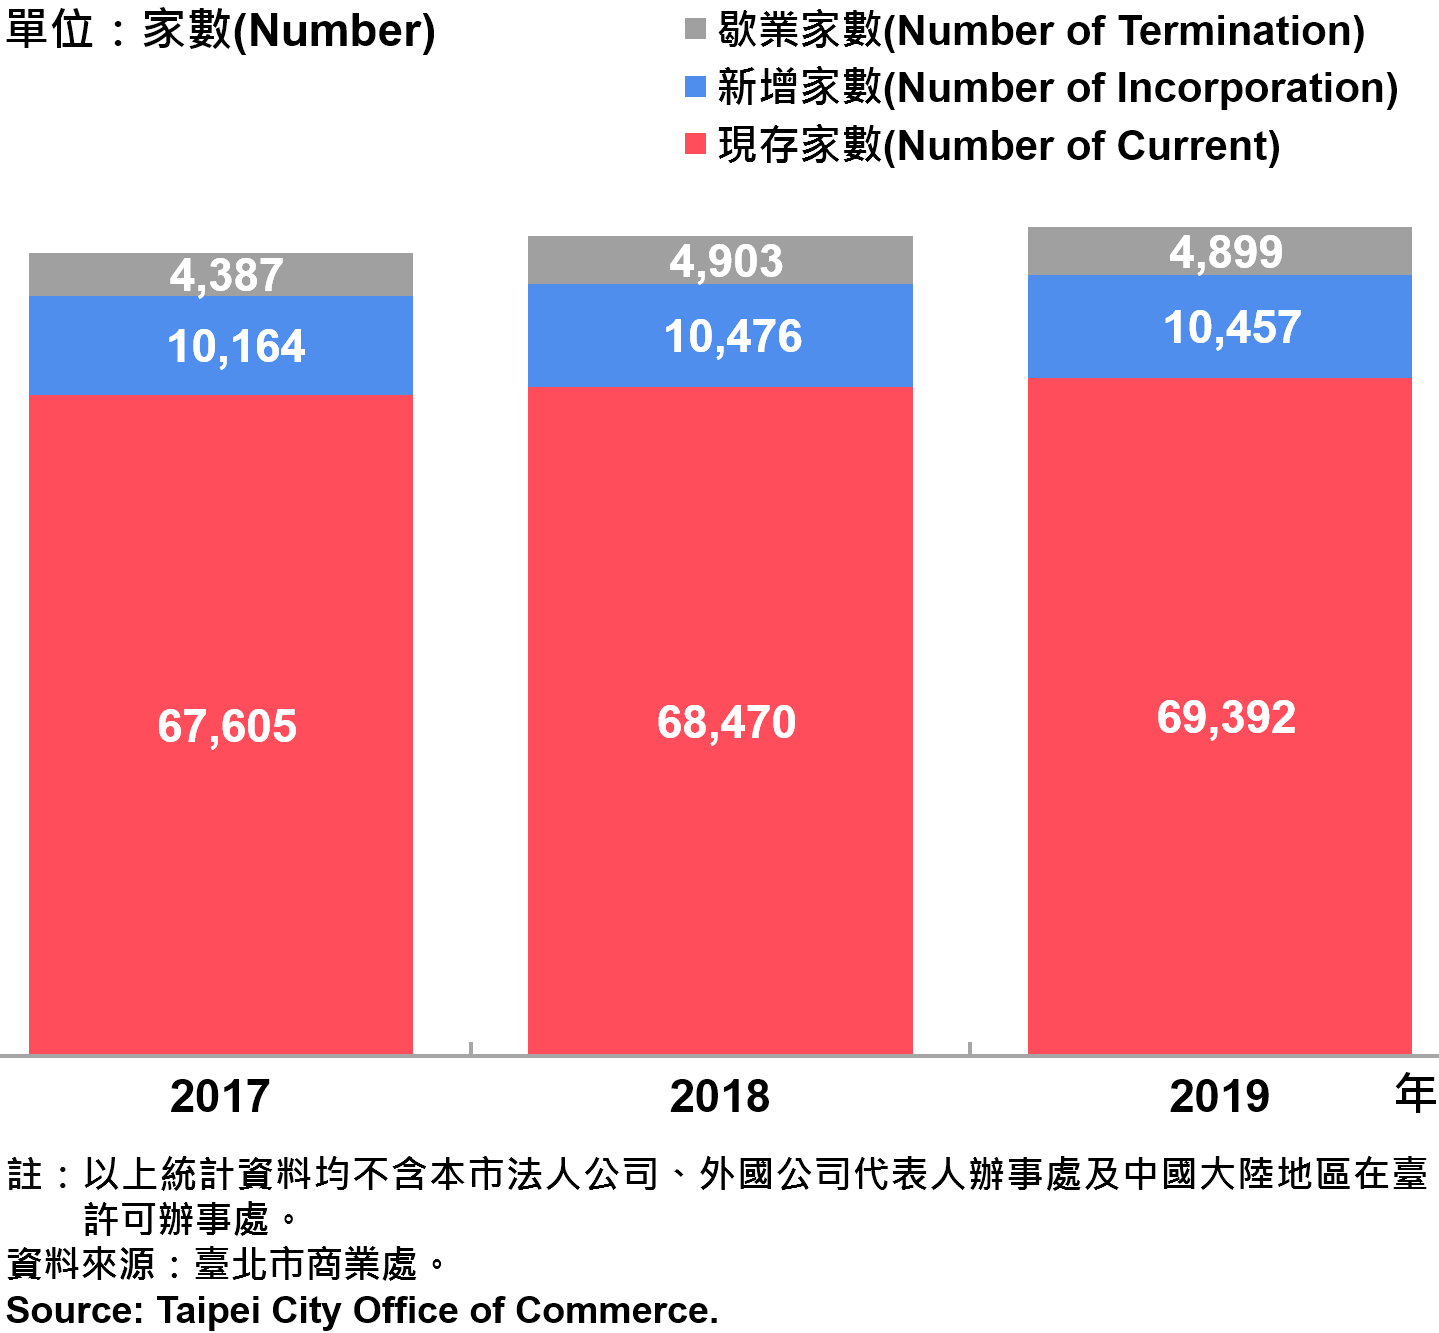 臺北市公司行號之青創負責人分布情形—2019 Responsible Person of Newly Registered Companies In Taipei City —2019